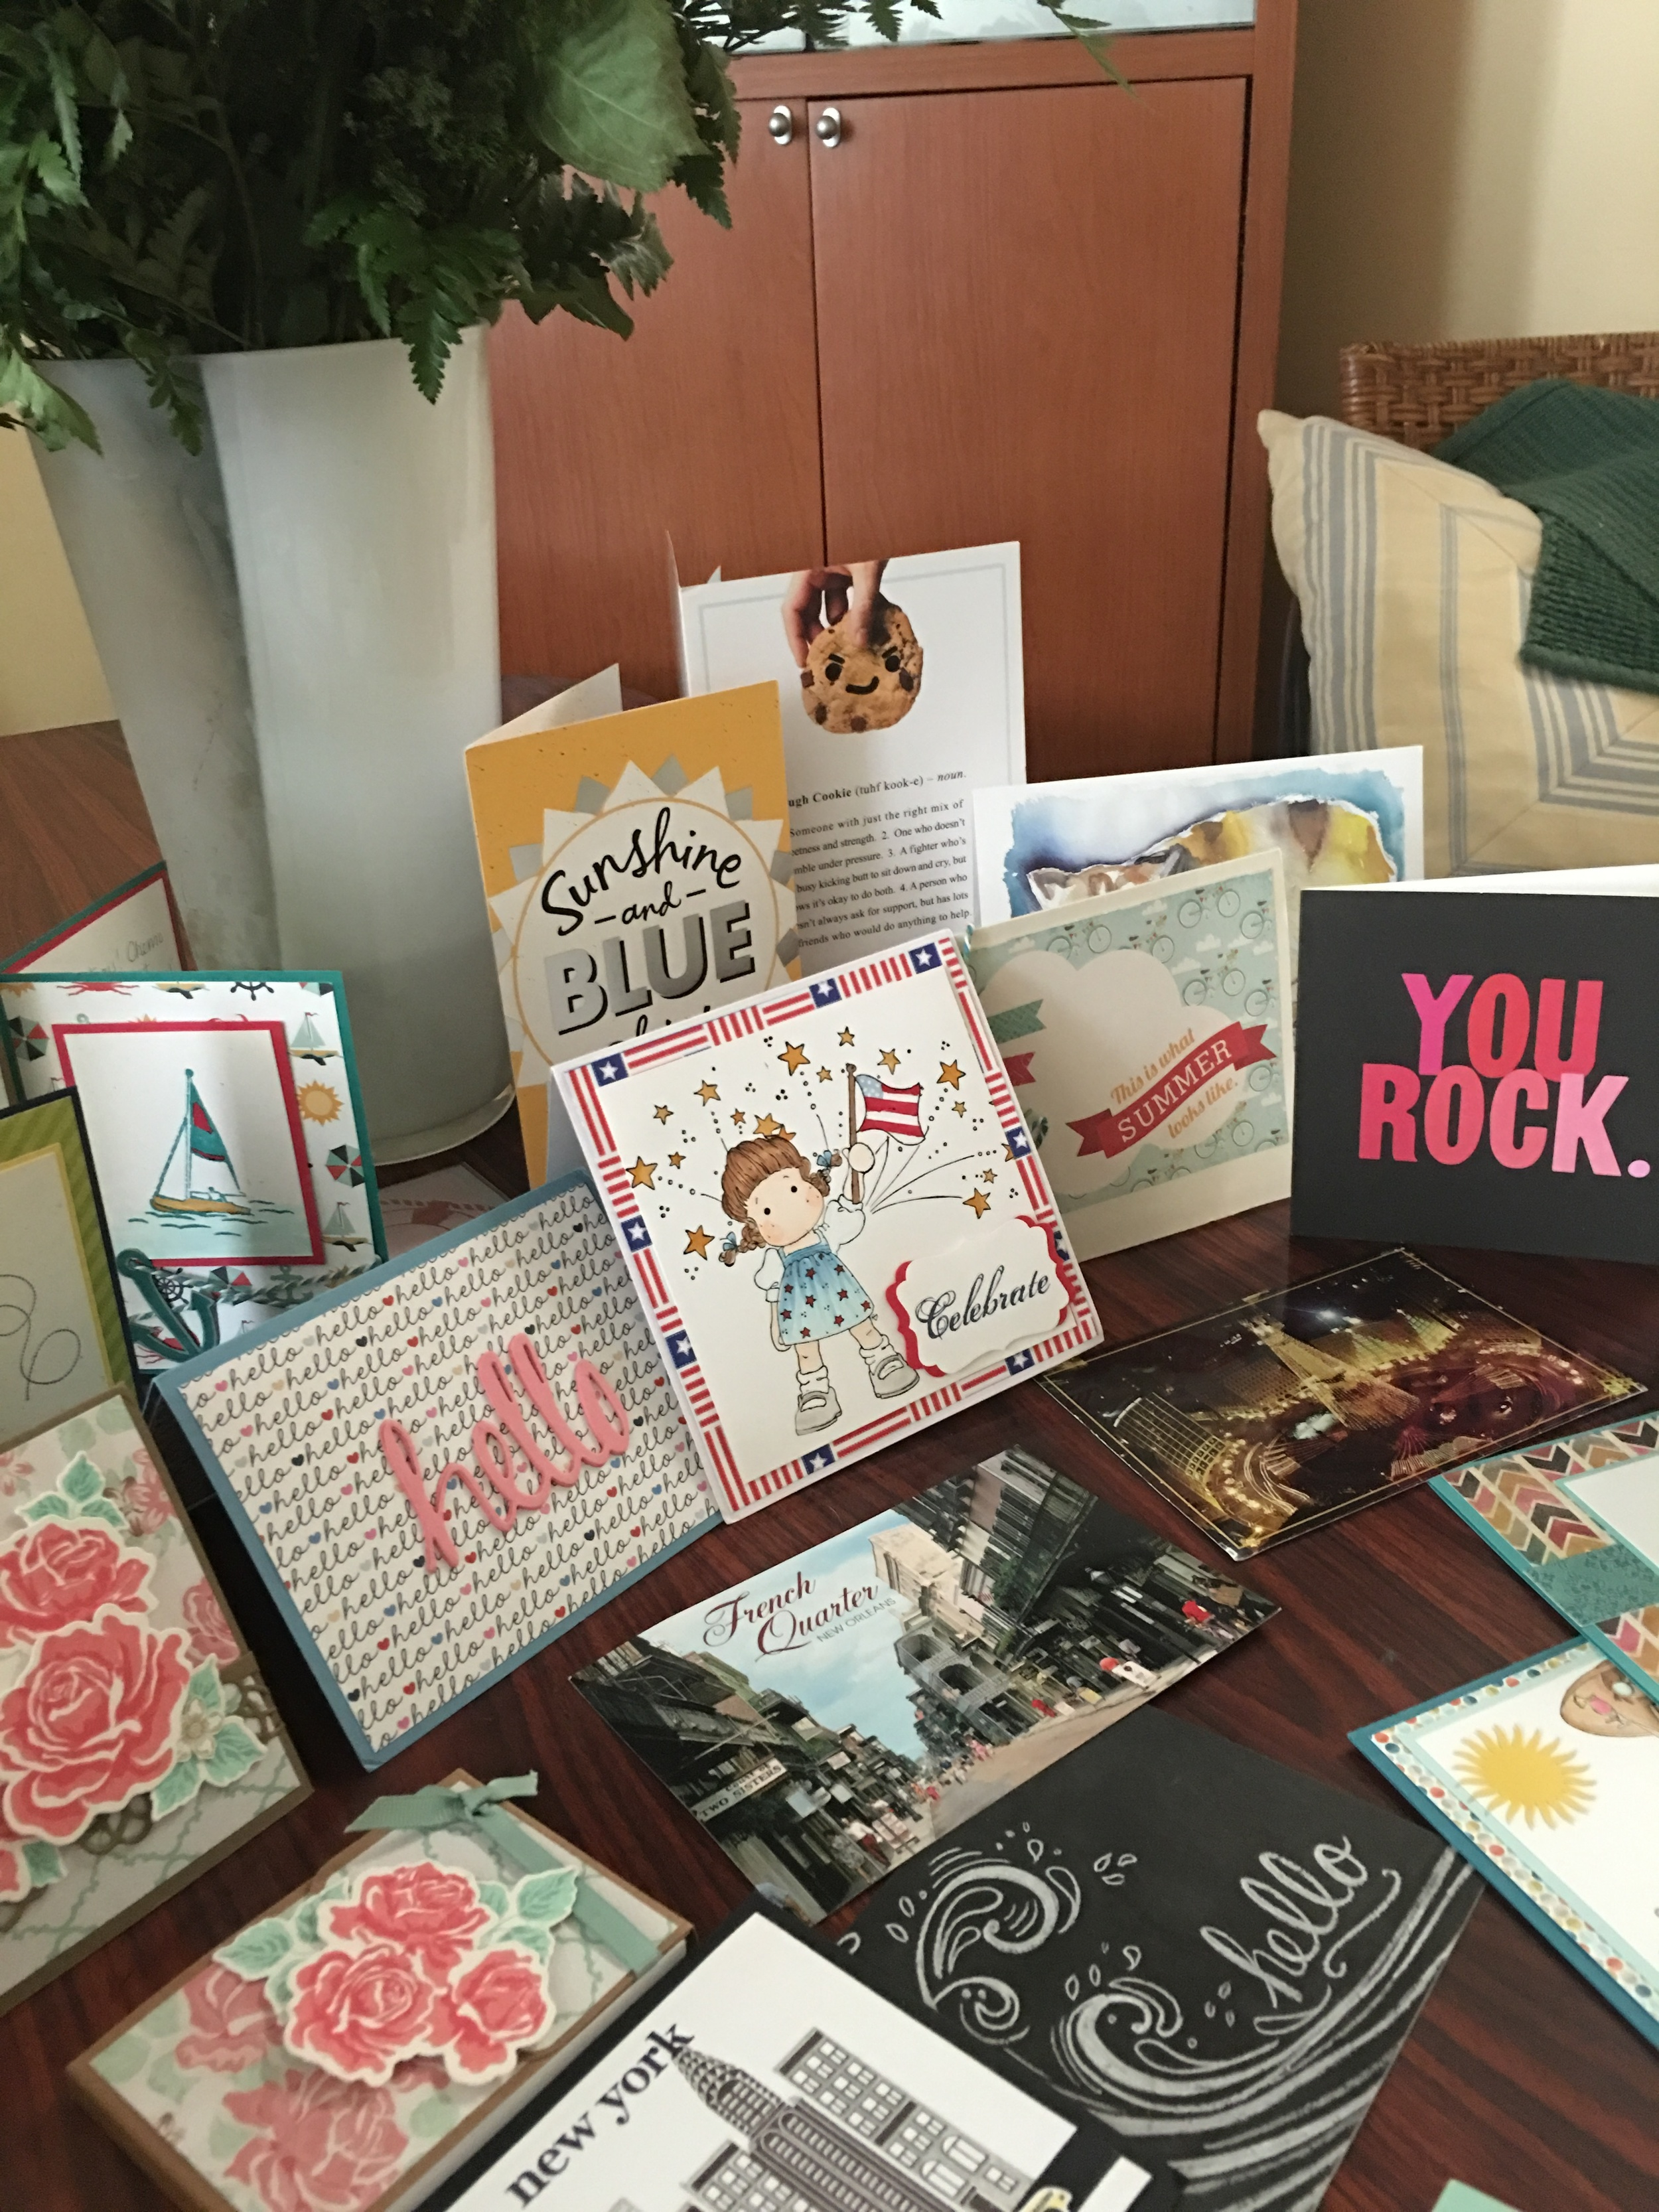 Post cards, greeting cards, note pads......my chemo angels rocked!!!!!